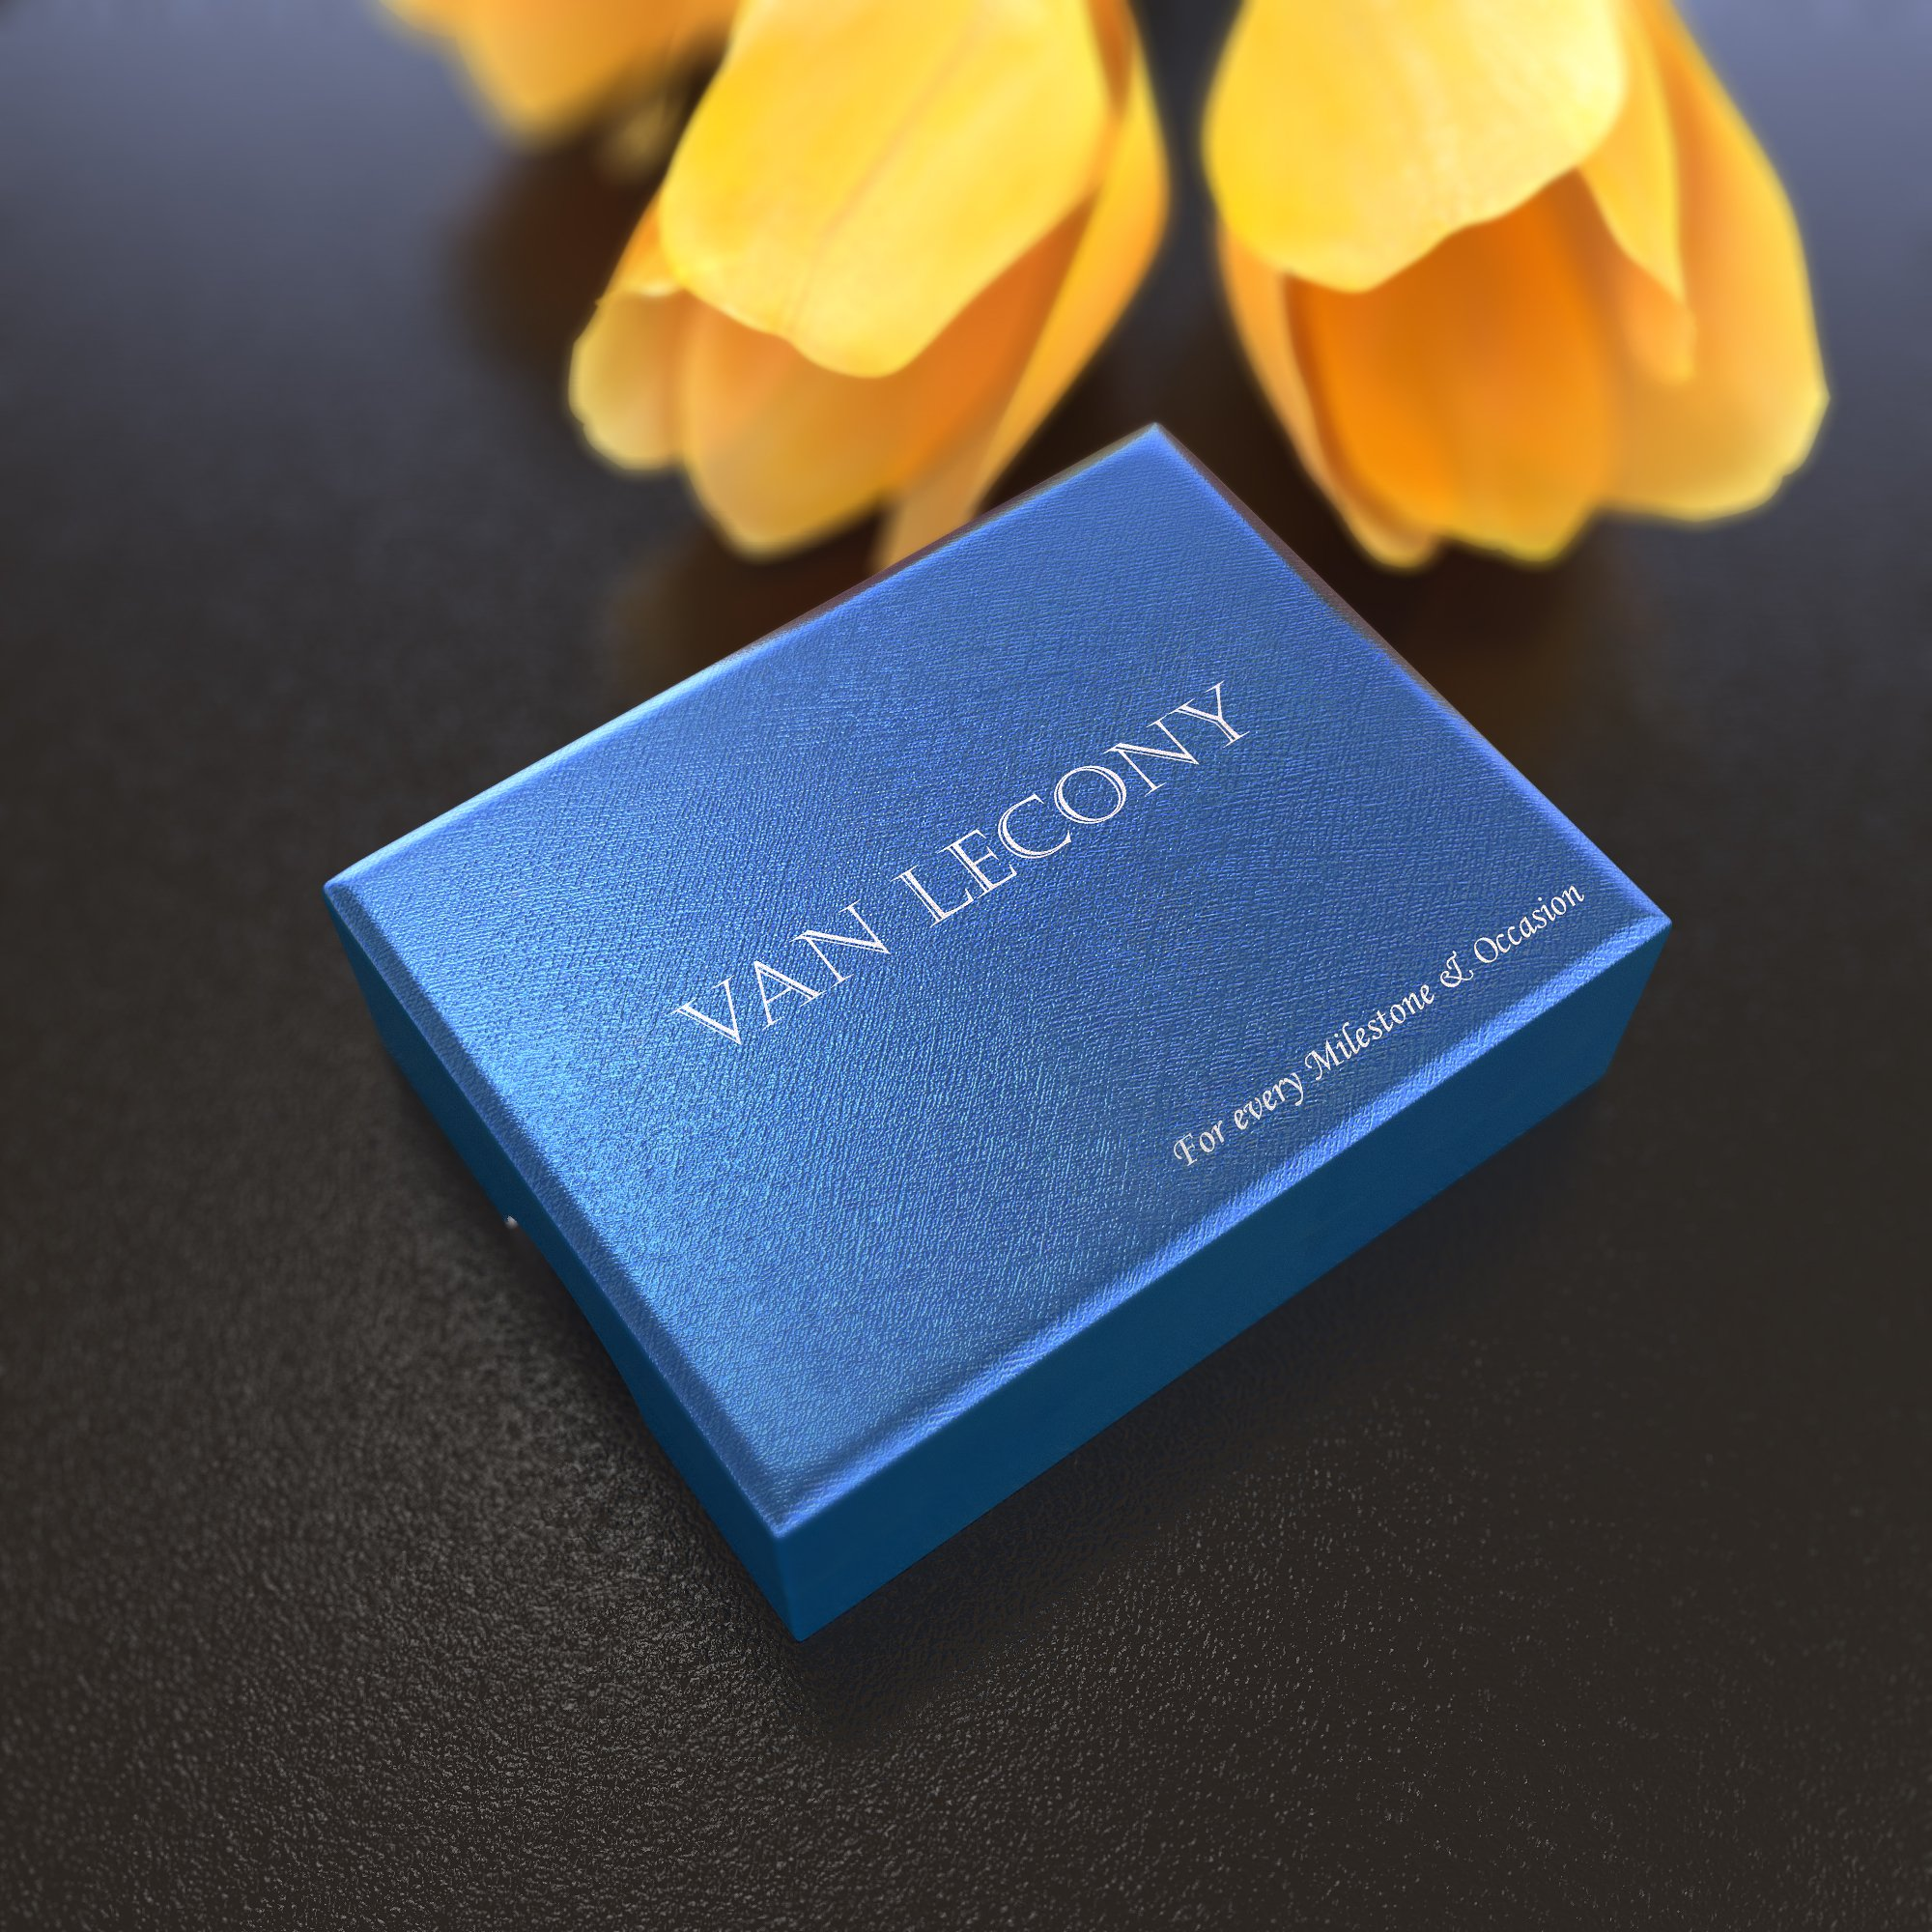 VAN LECONY White Gold and Gold Plated Flower Stud Earrings,Light Peach by VAN LECONY (Image #6)